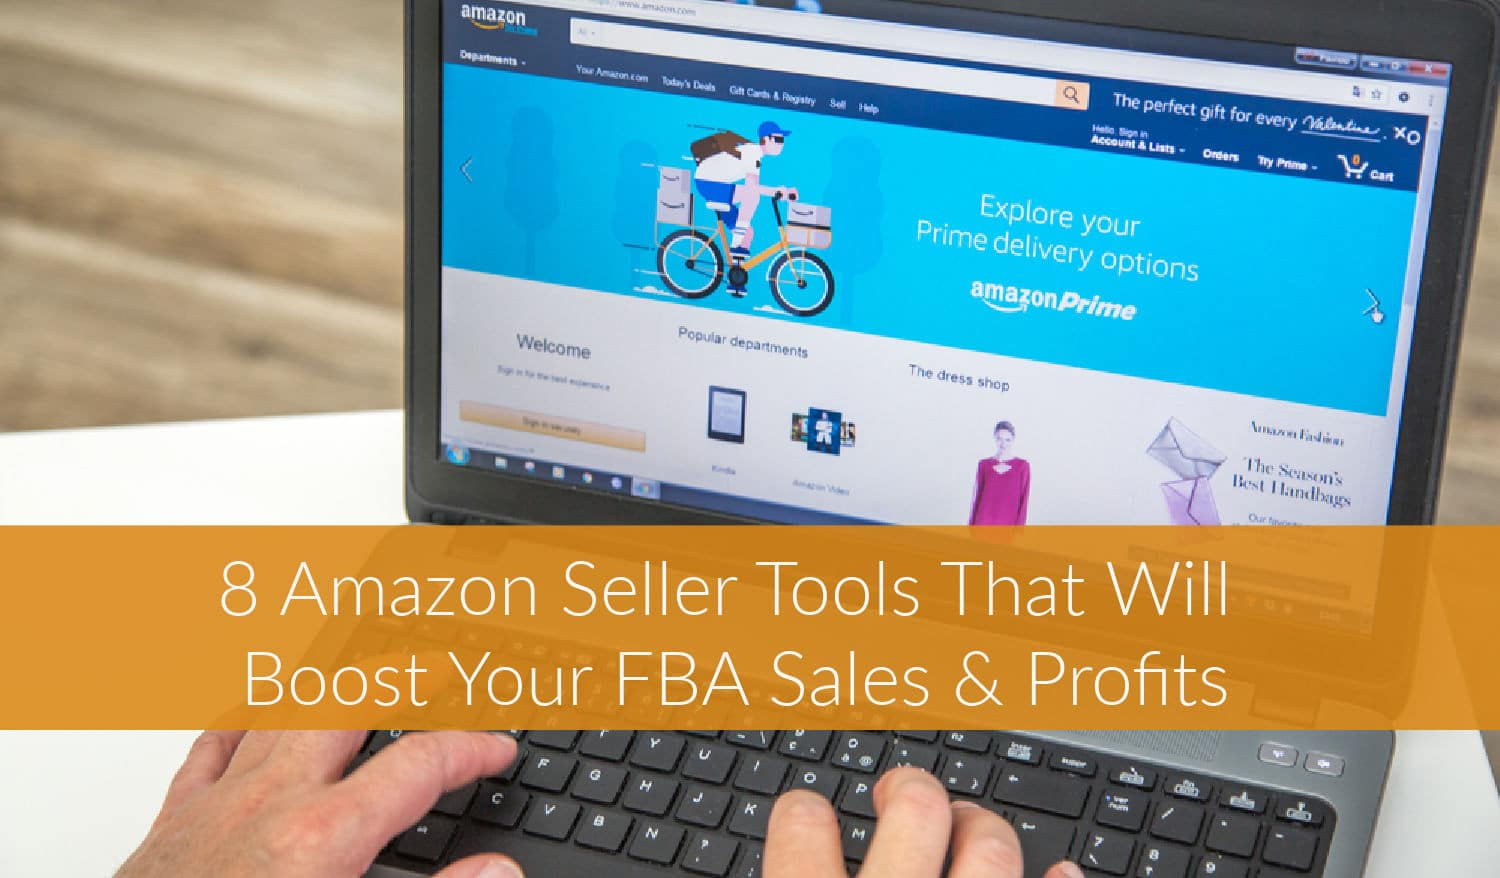 8 Amazon Seller Tools That Will Boost Your FBA Sales & Profits